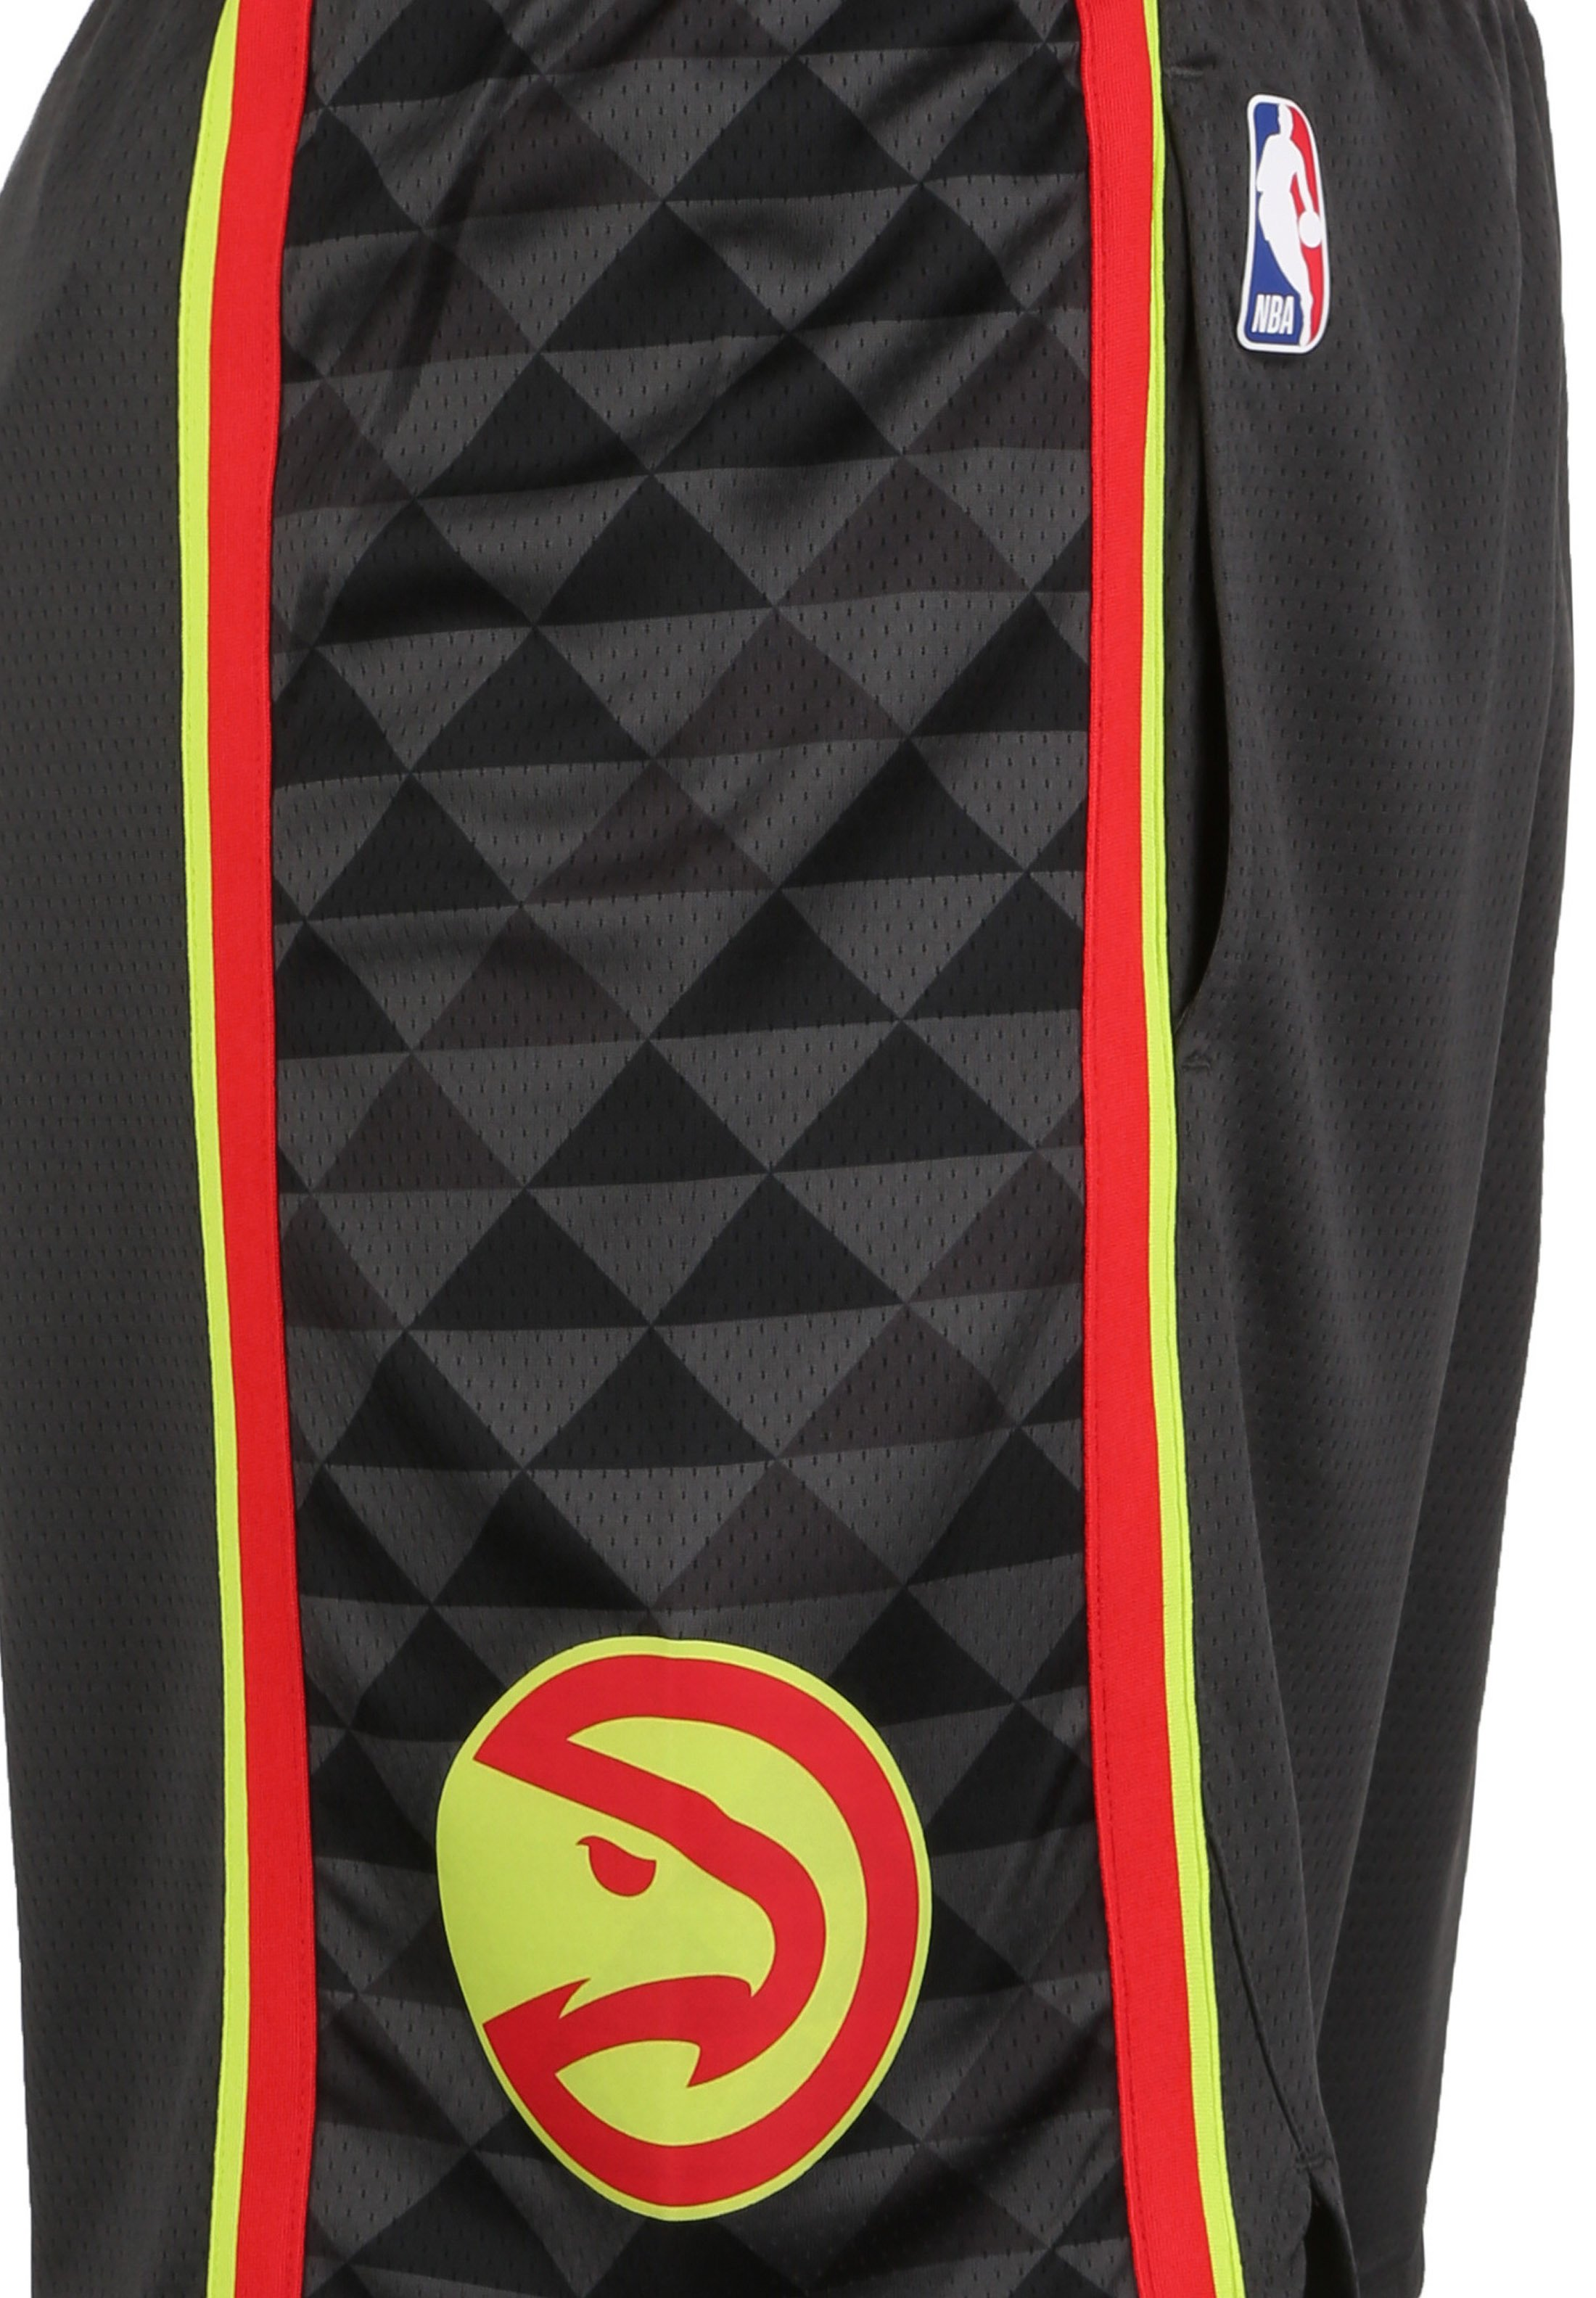 Nike Performance Short - anthracite/red